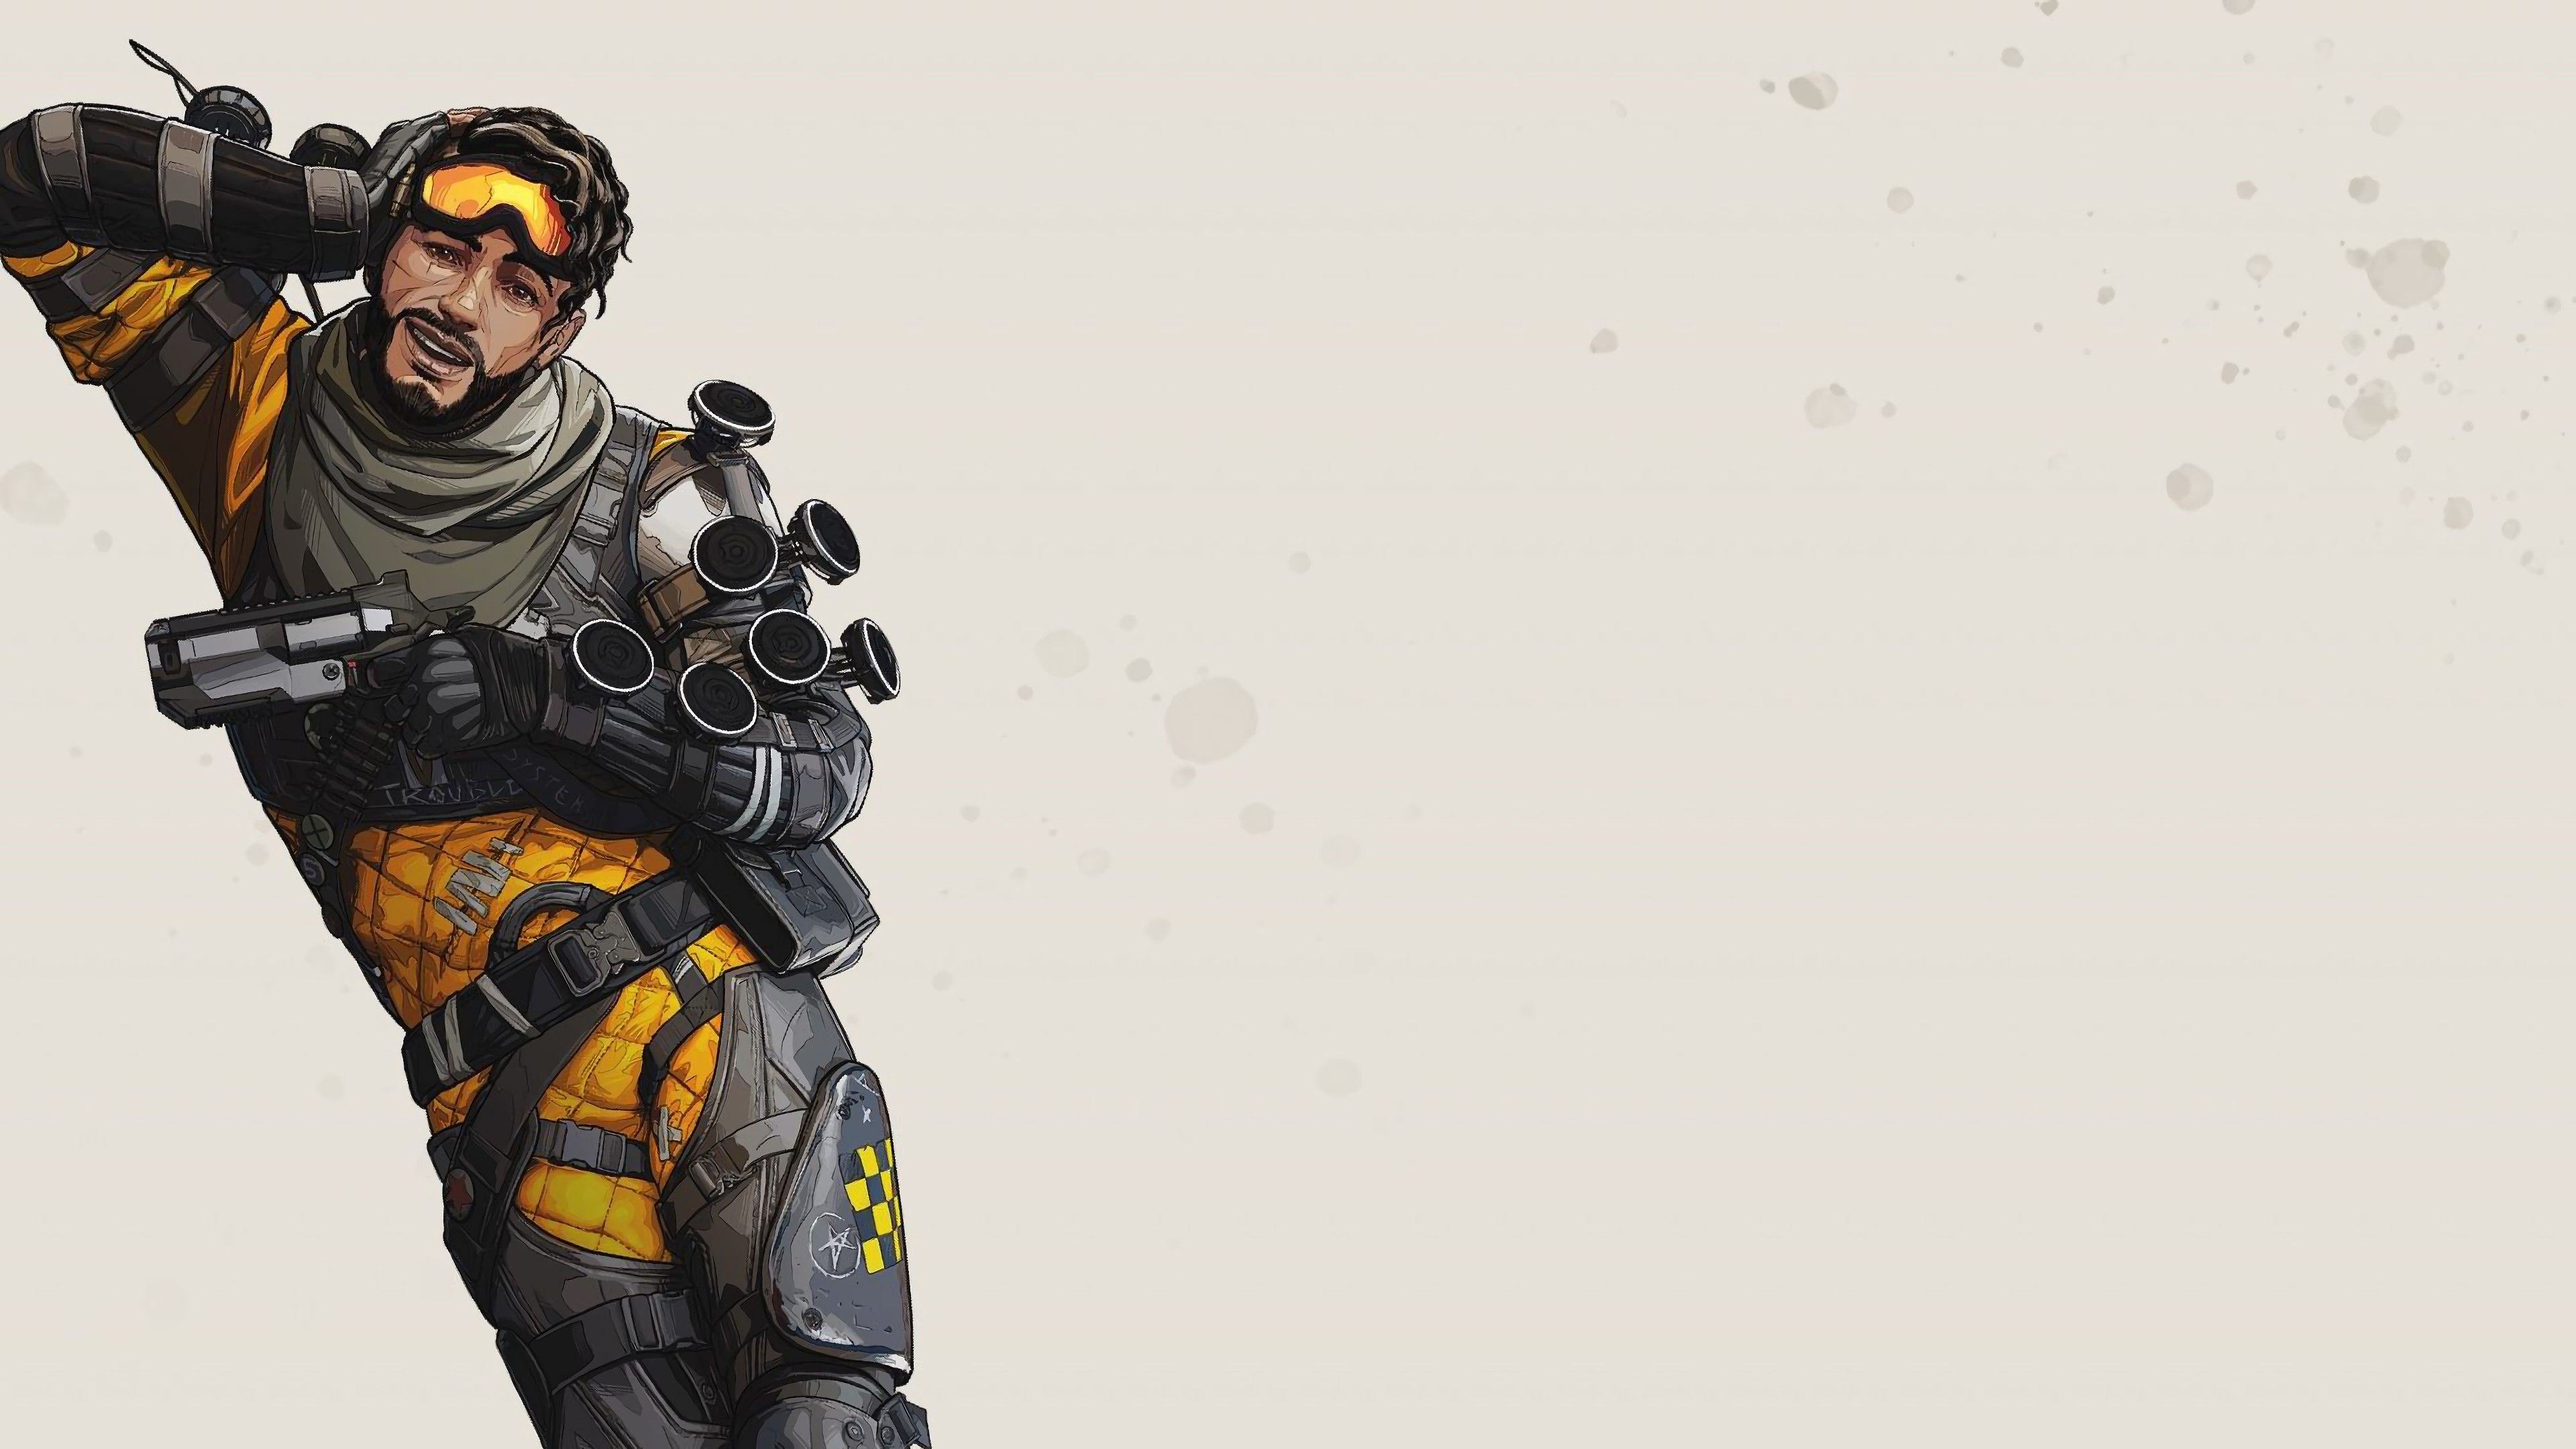 Wallpaper 4k Apex Legends Mirage 2019 4k Apex Legends 4k